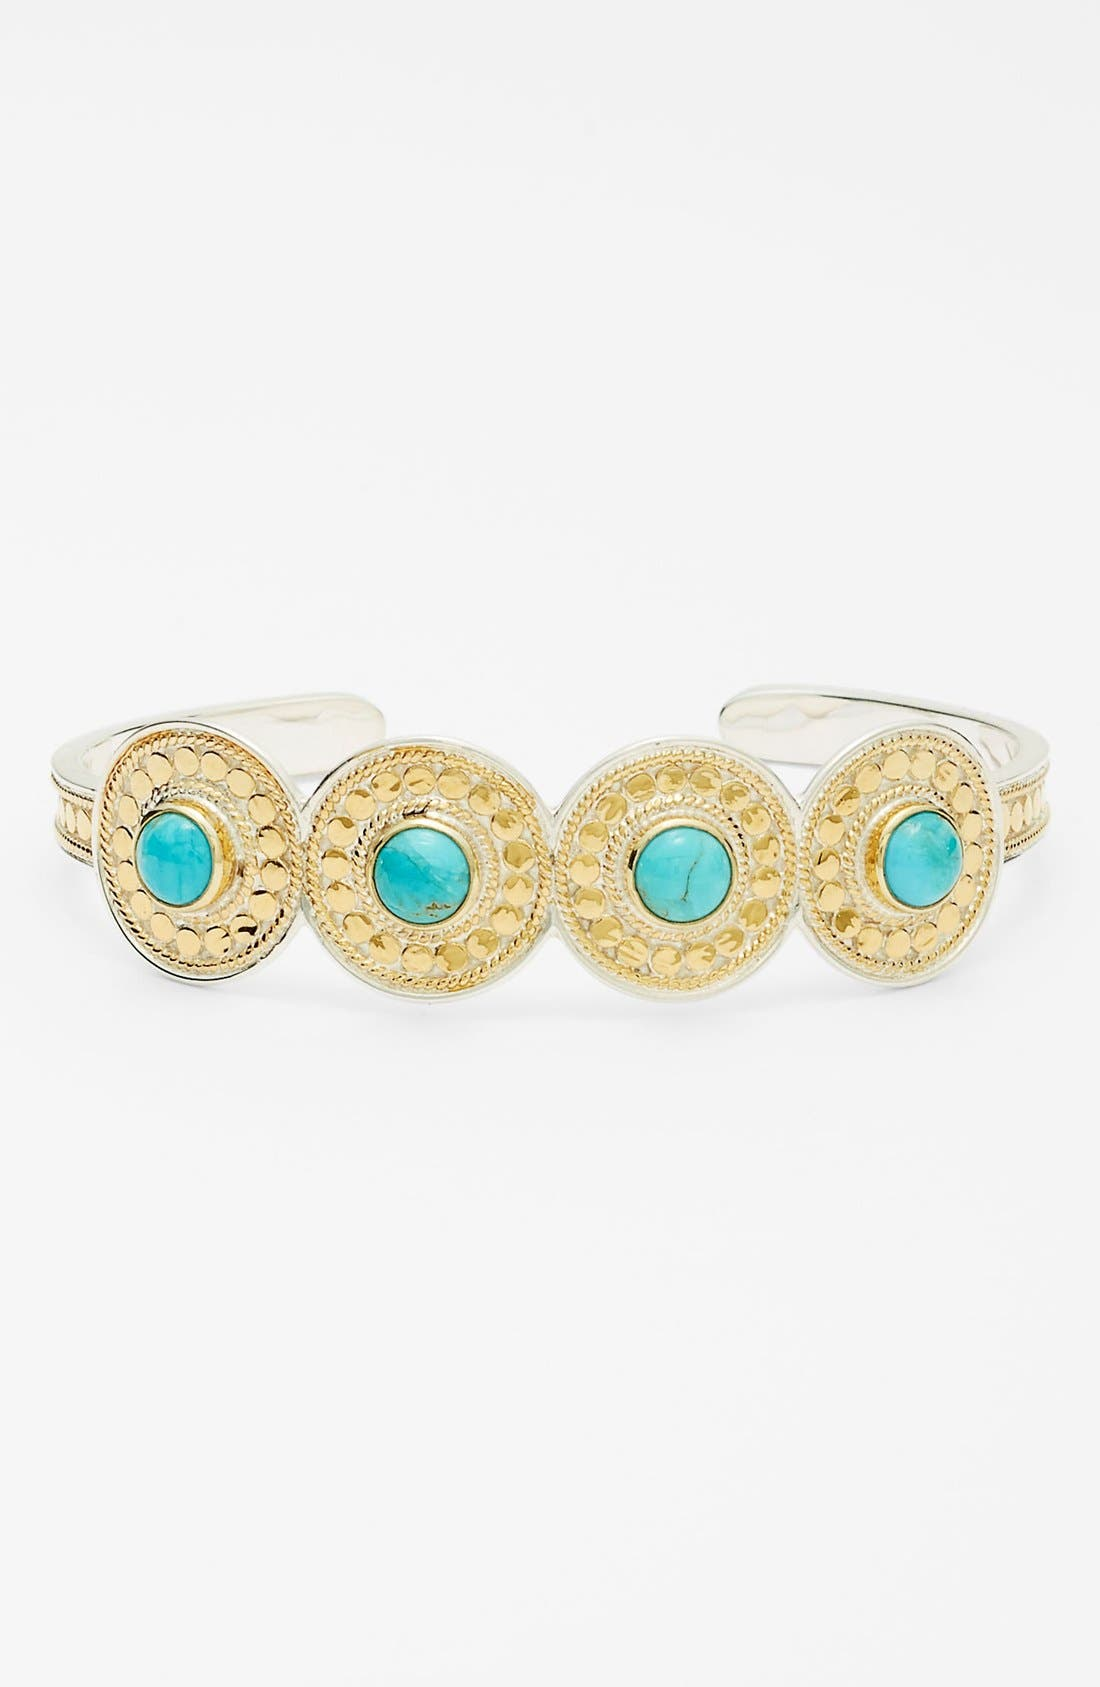 Alternate Image 1 Selected - Anna Beck 'Gili' Skinny Station Cuff